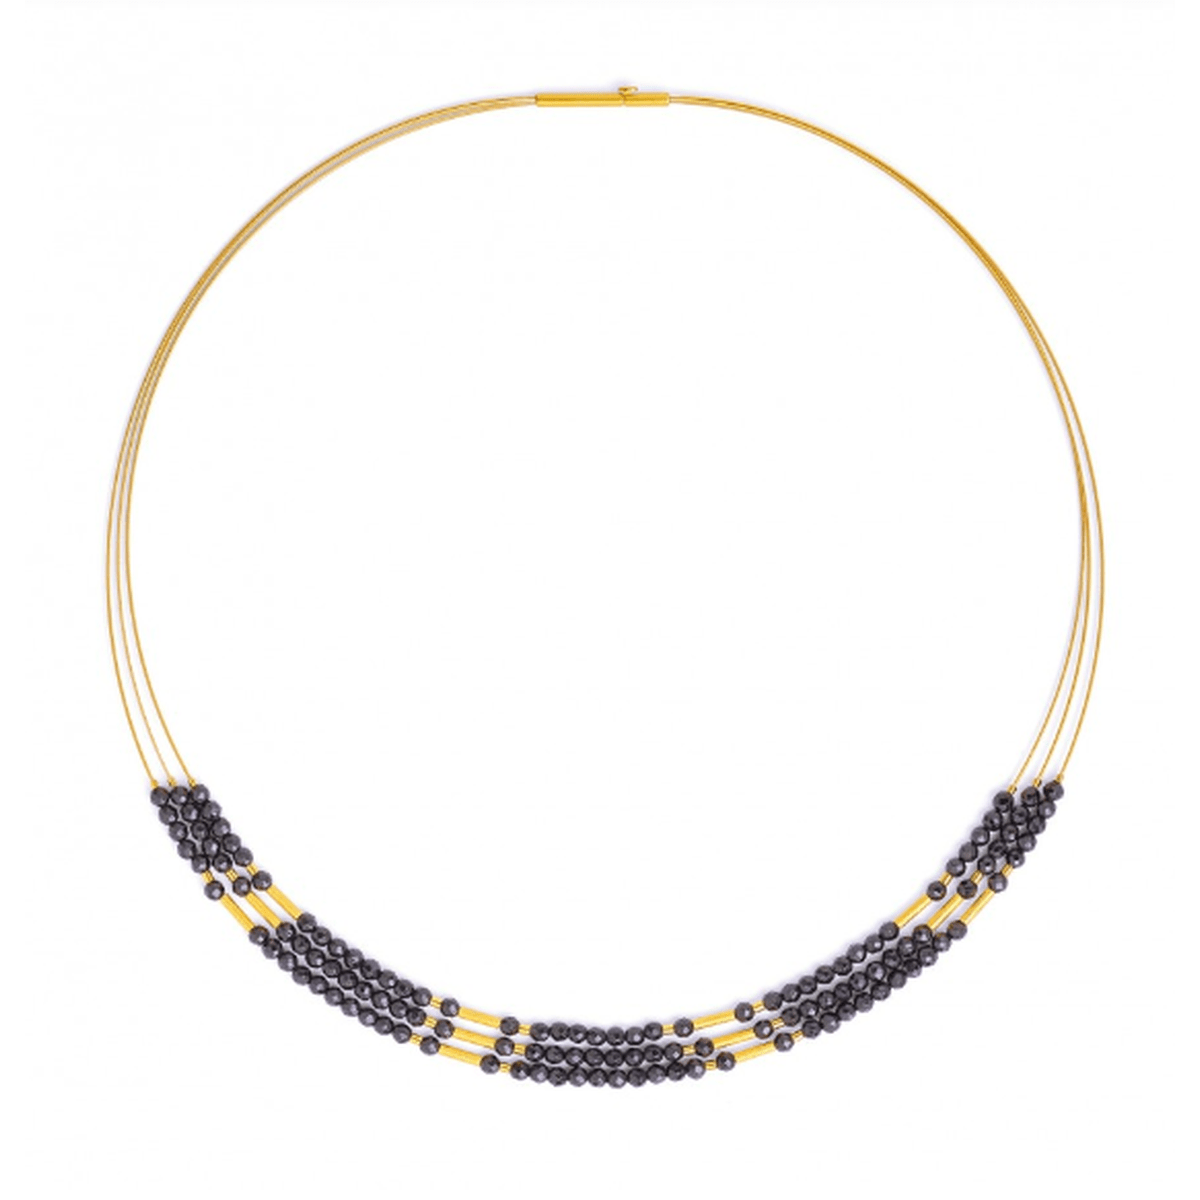 Clinitri Spinel Necklace - 85236496-Bernd Wolf-Renee Taylor Gallery